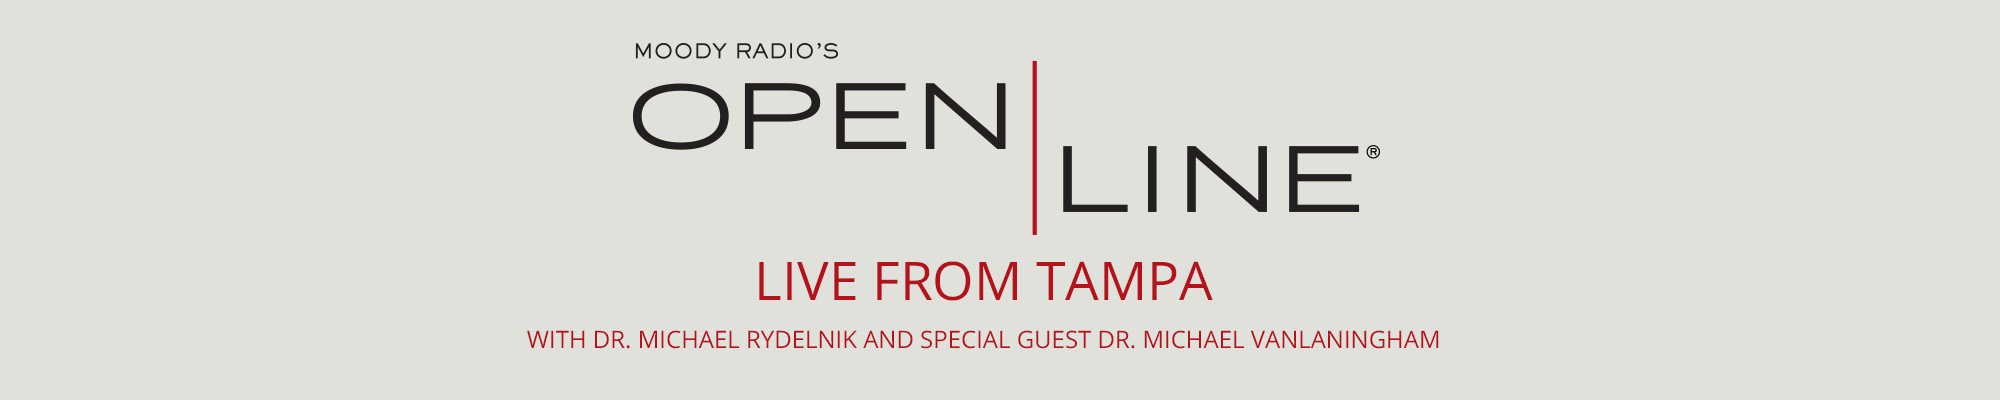 Open Line LIVE in Tampa